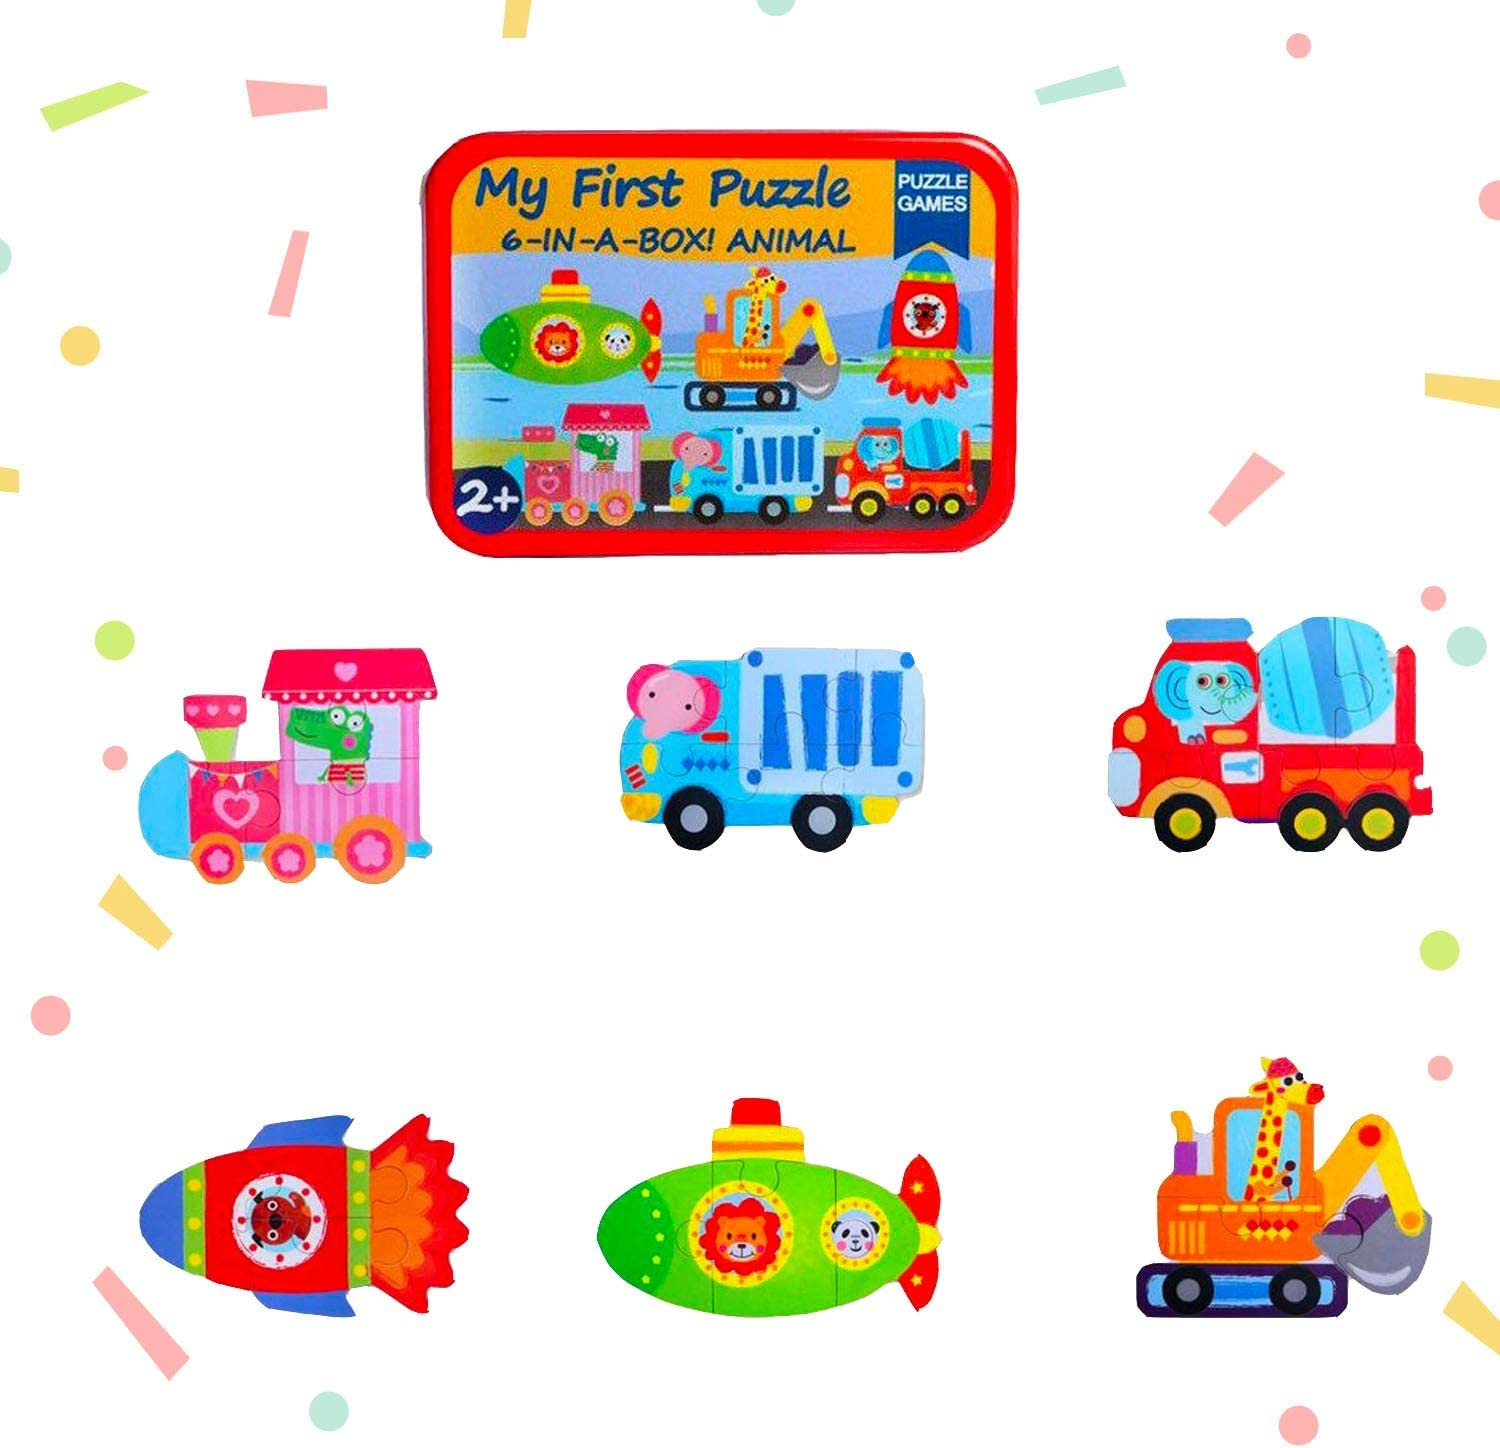 Baby's First Puzzle Wooden Animal and Vehicles Puzzles for Cognitive Development of Toddlers and Preschoolers – Homeschooling and Kindergarten Montessori Teaching Aids – Service Vehicles